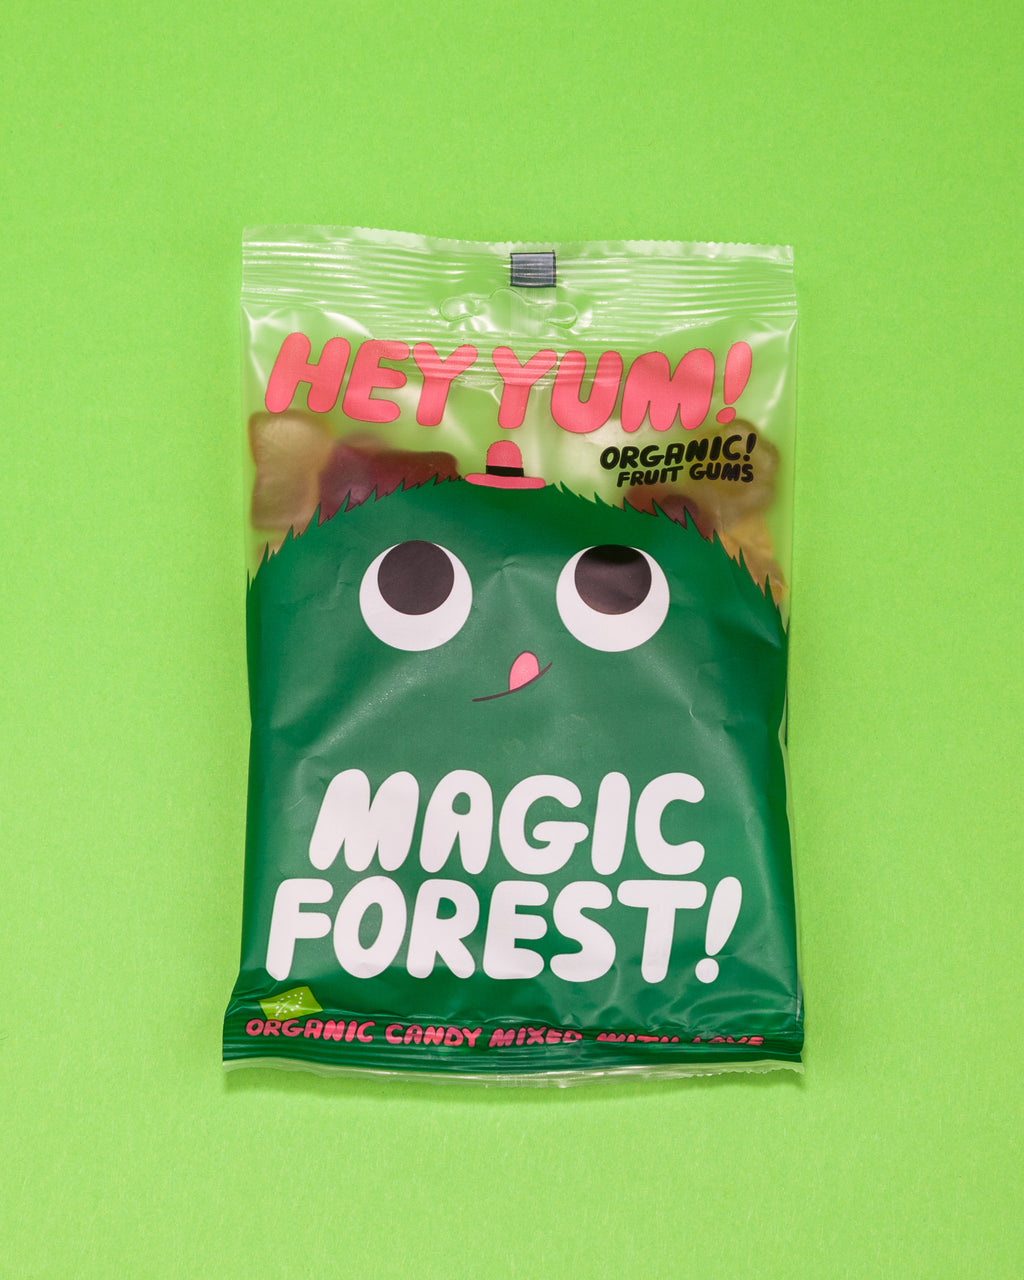 MAGIC FOREST!